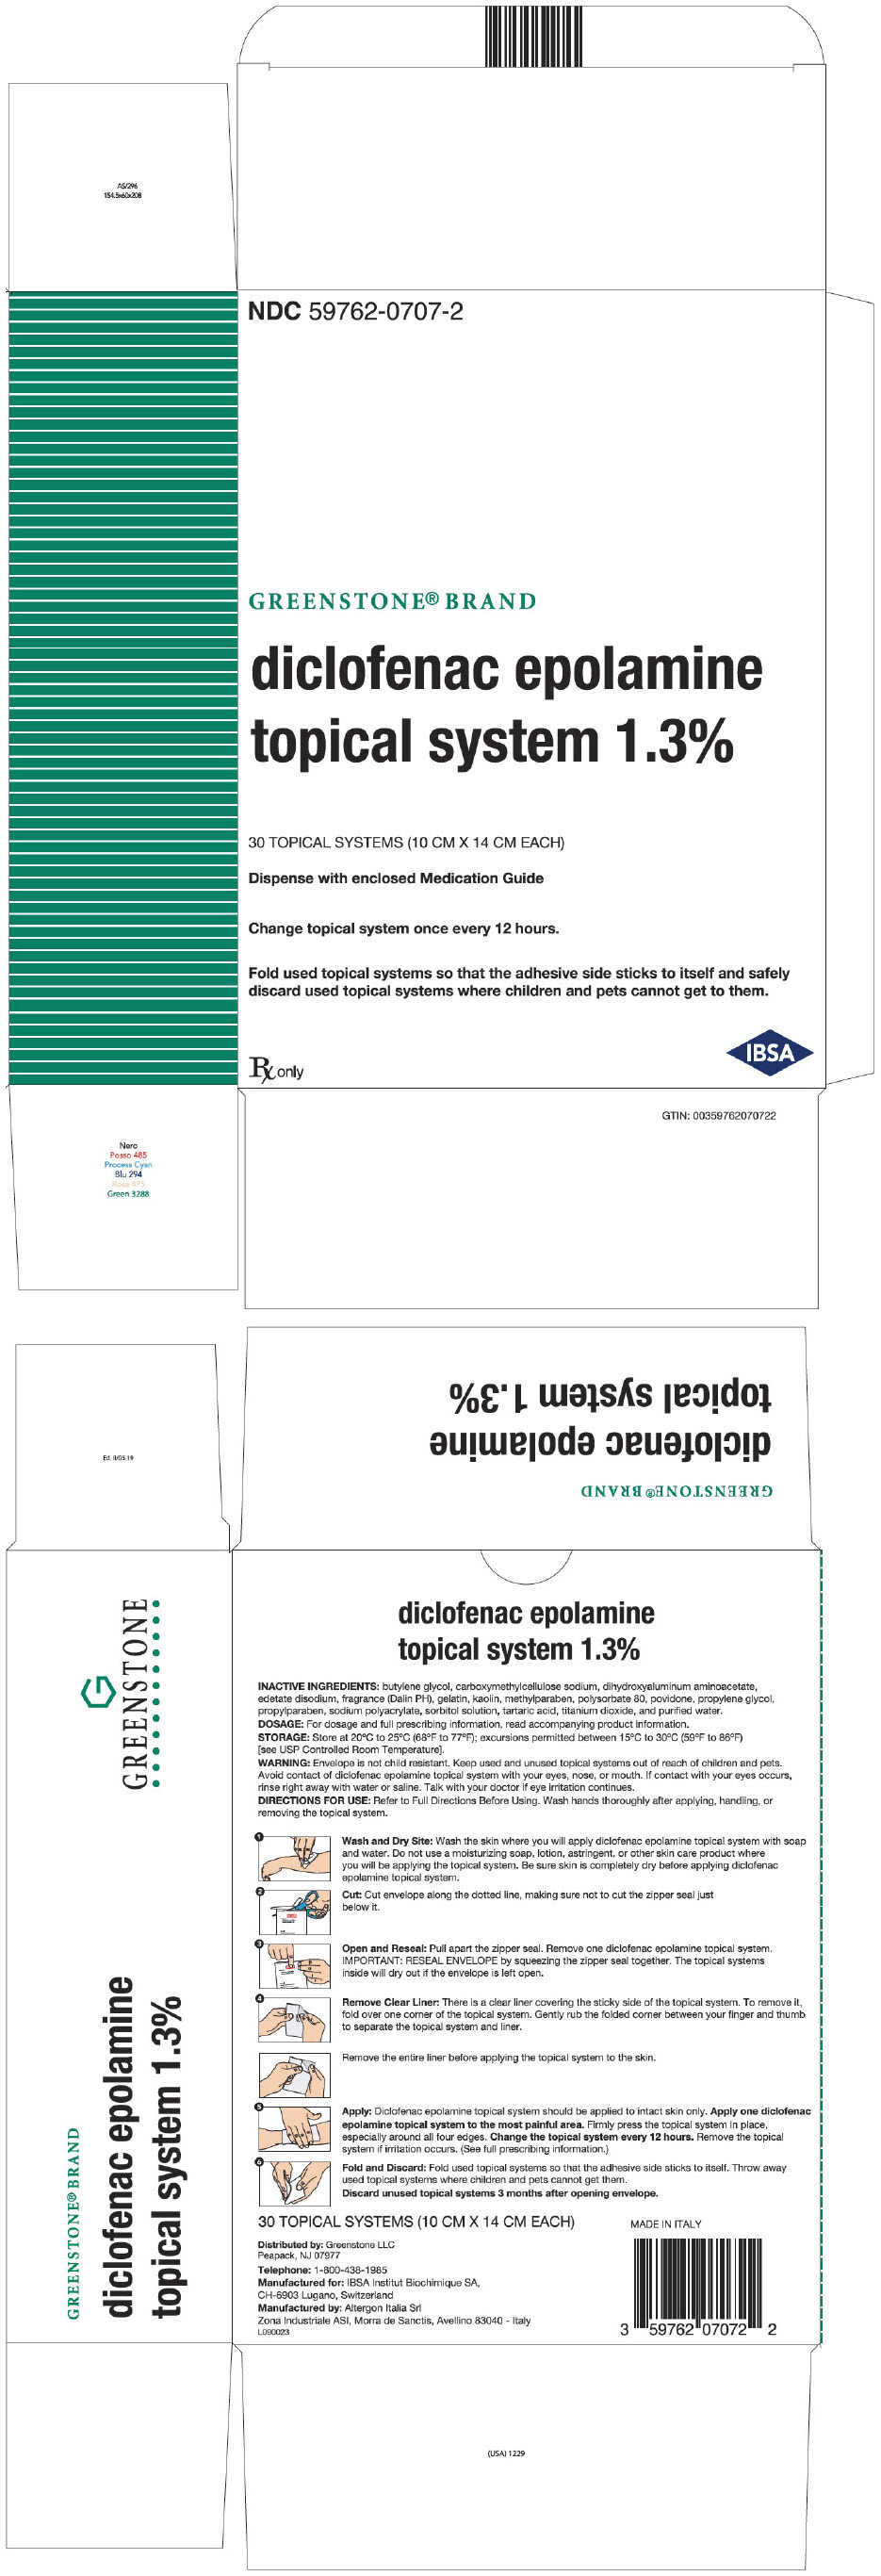 PRINCIPAL DISPLAY PANEL - 30 Topical System Pouch Carton